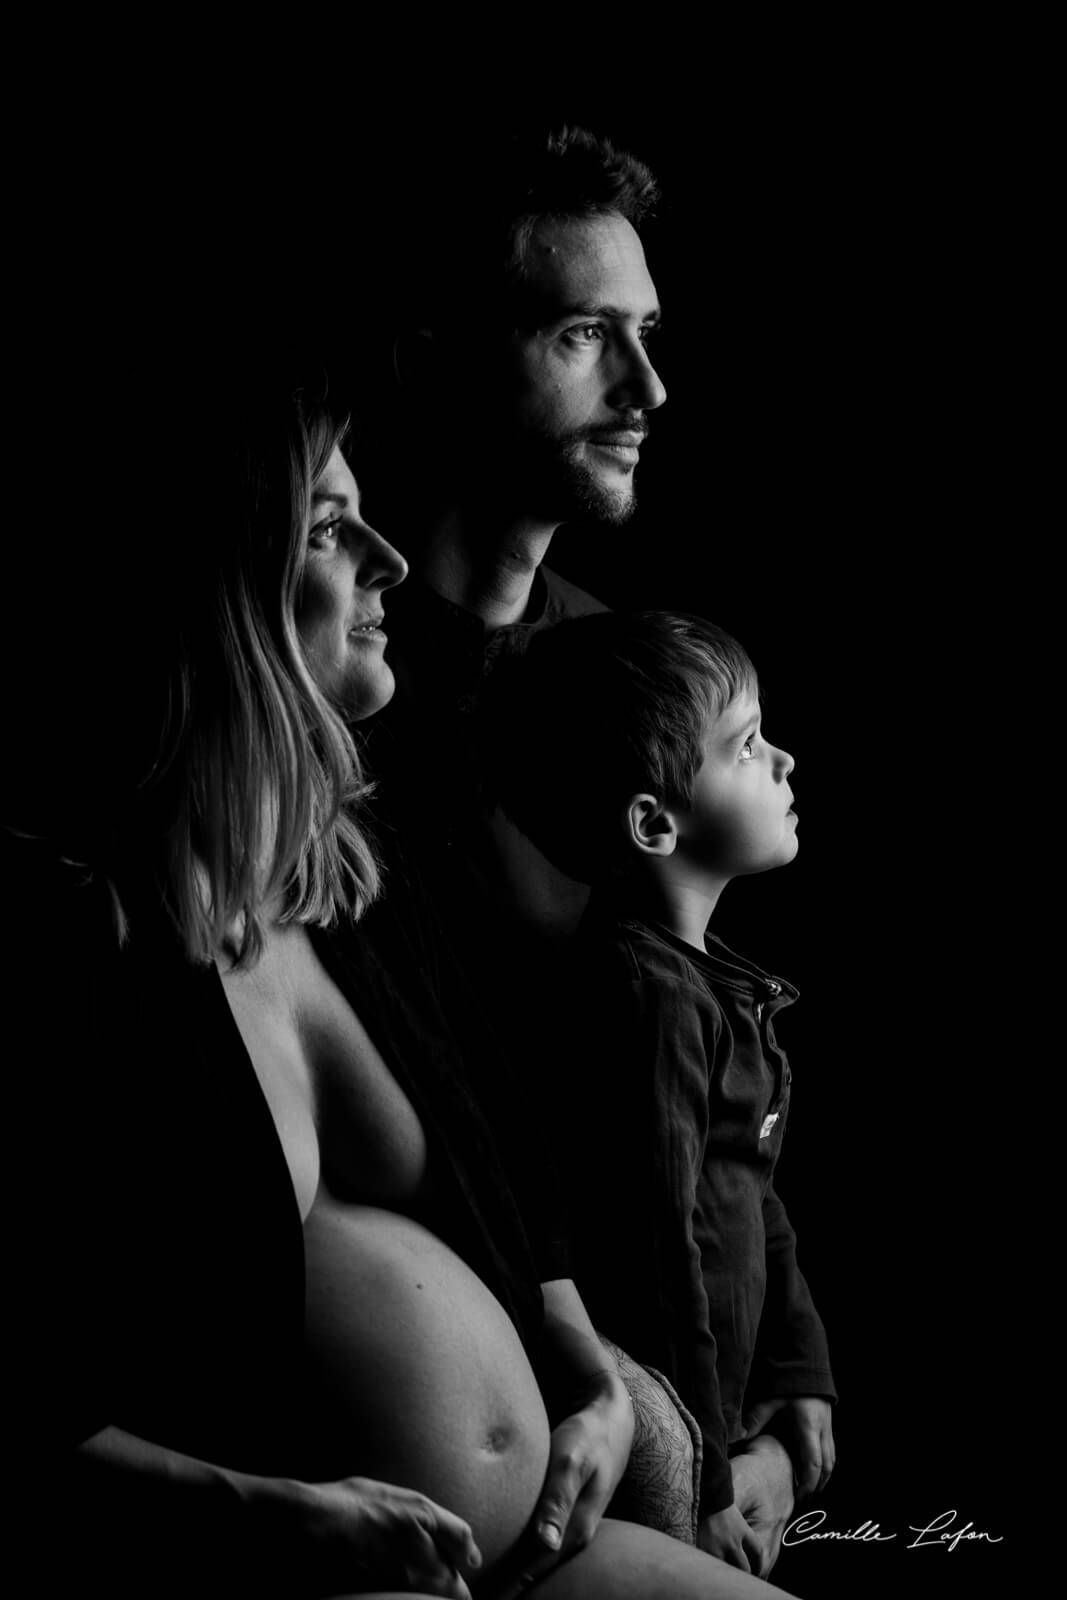 photographe grossesse famille montpellier beziers studio photo